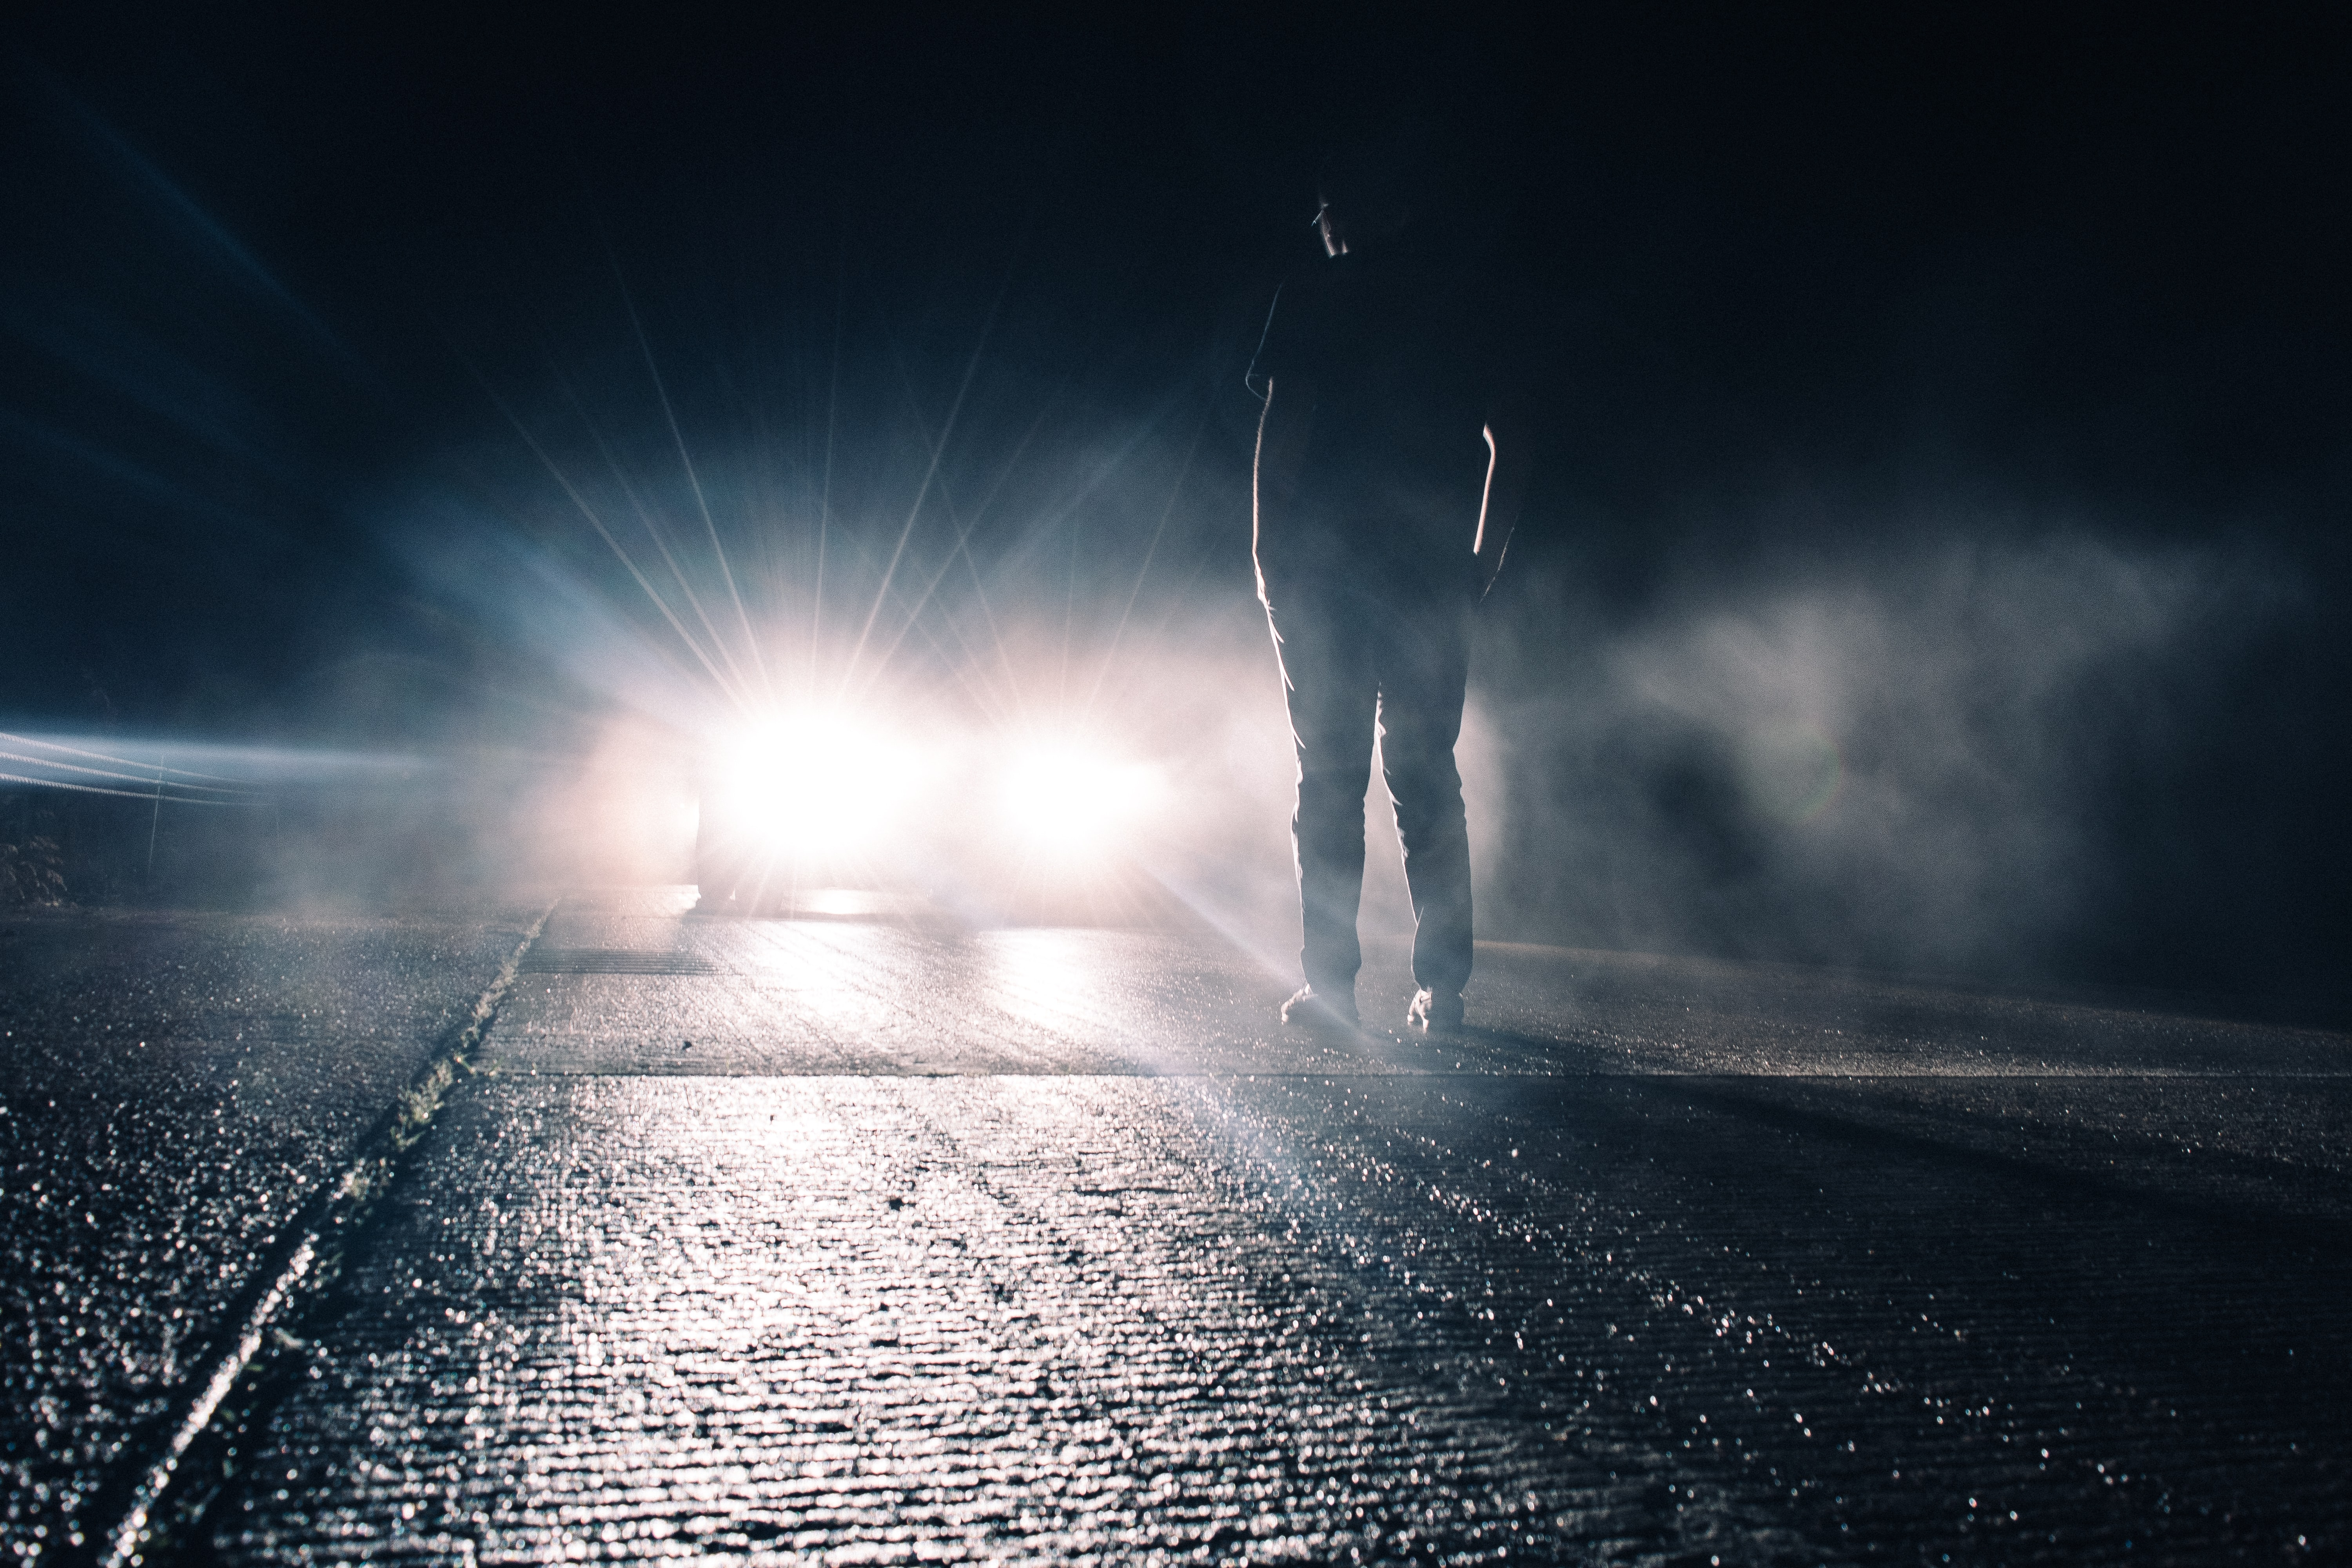 A man standing in the dark on the street in front of a headlight shining light at him in Brandon